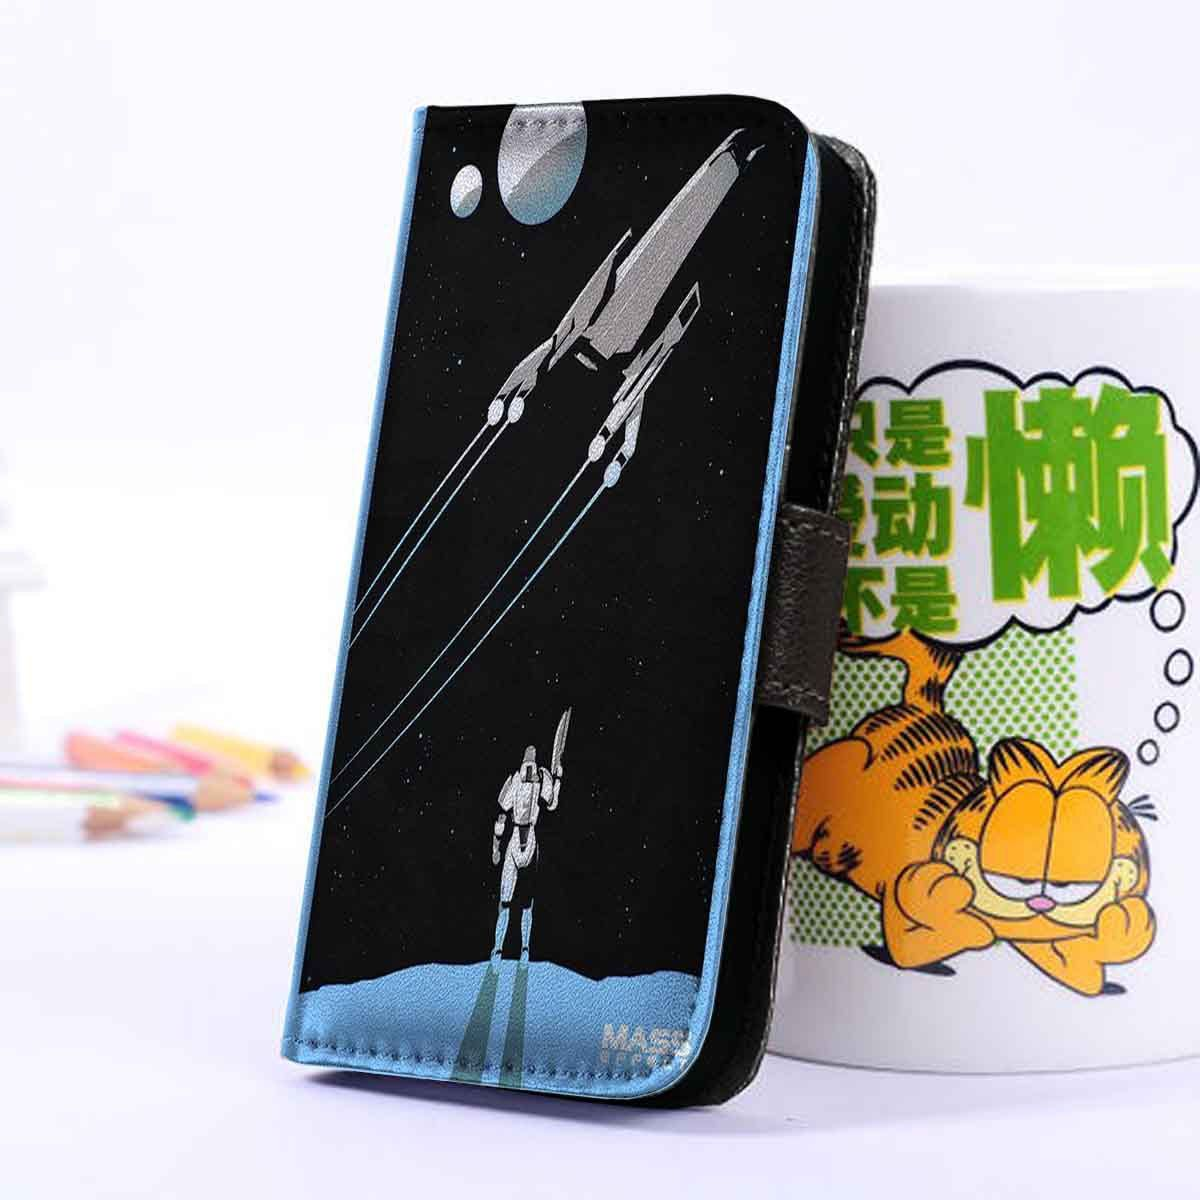 Mass Effect | Game | Wallet Case | iPhone 4 4S 5 5S 5C 6 6+ Case | Samsung Galaxy S3 S4 S5 Cover | HTC Cases - jackandgeorges